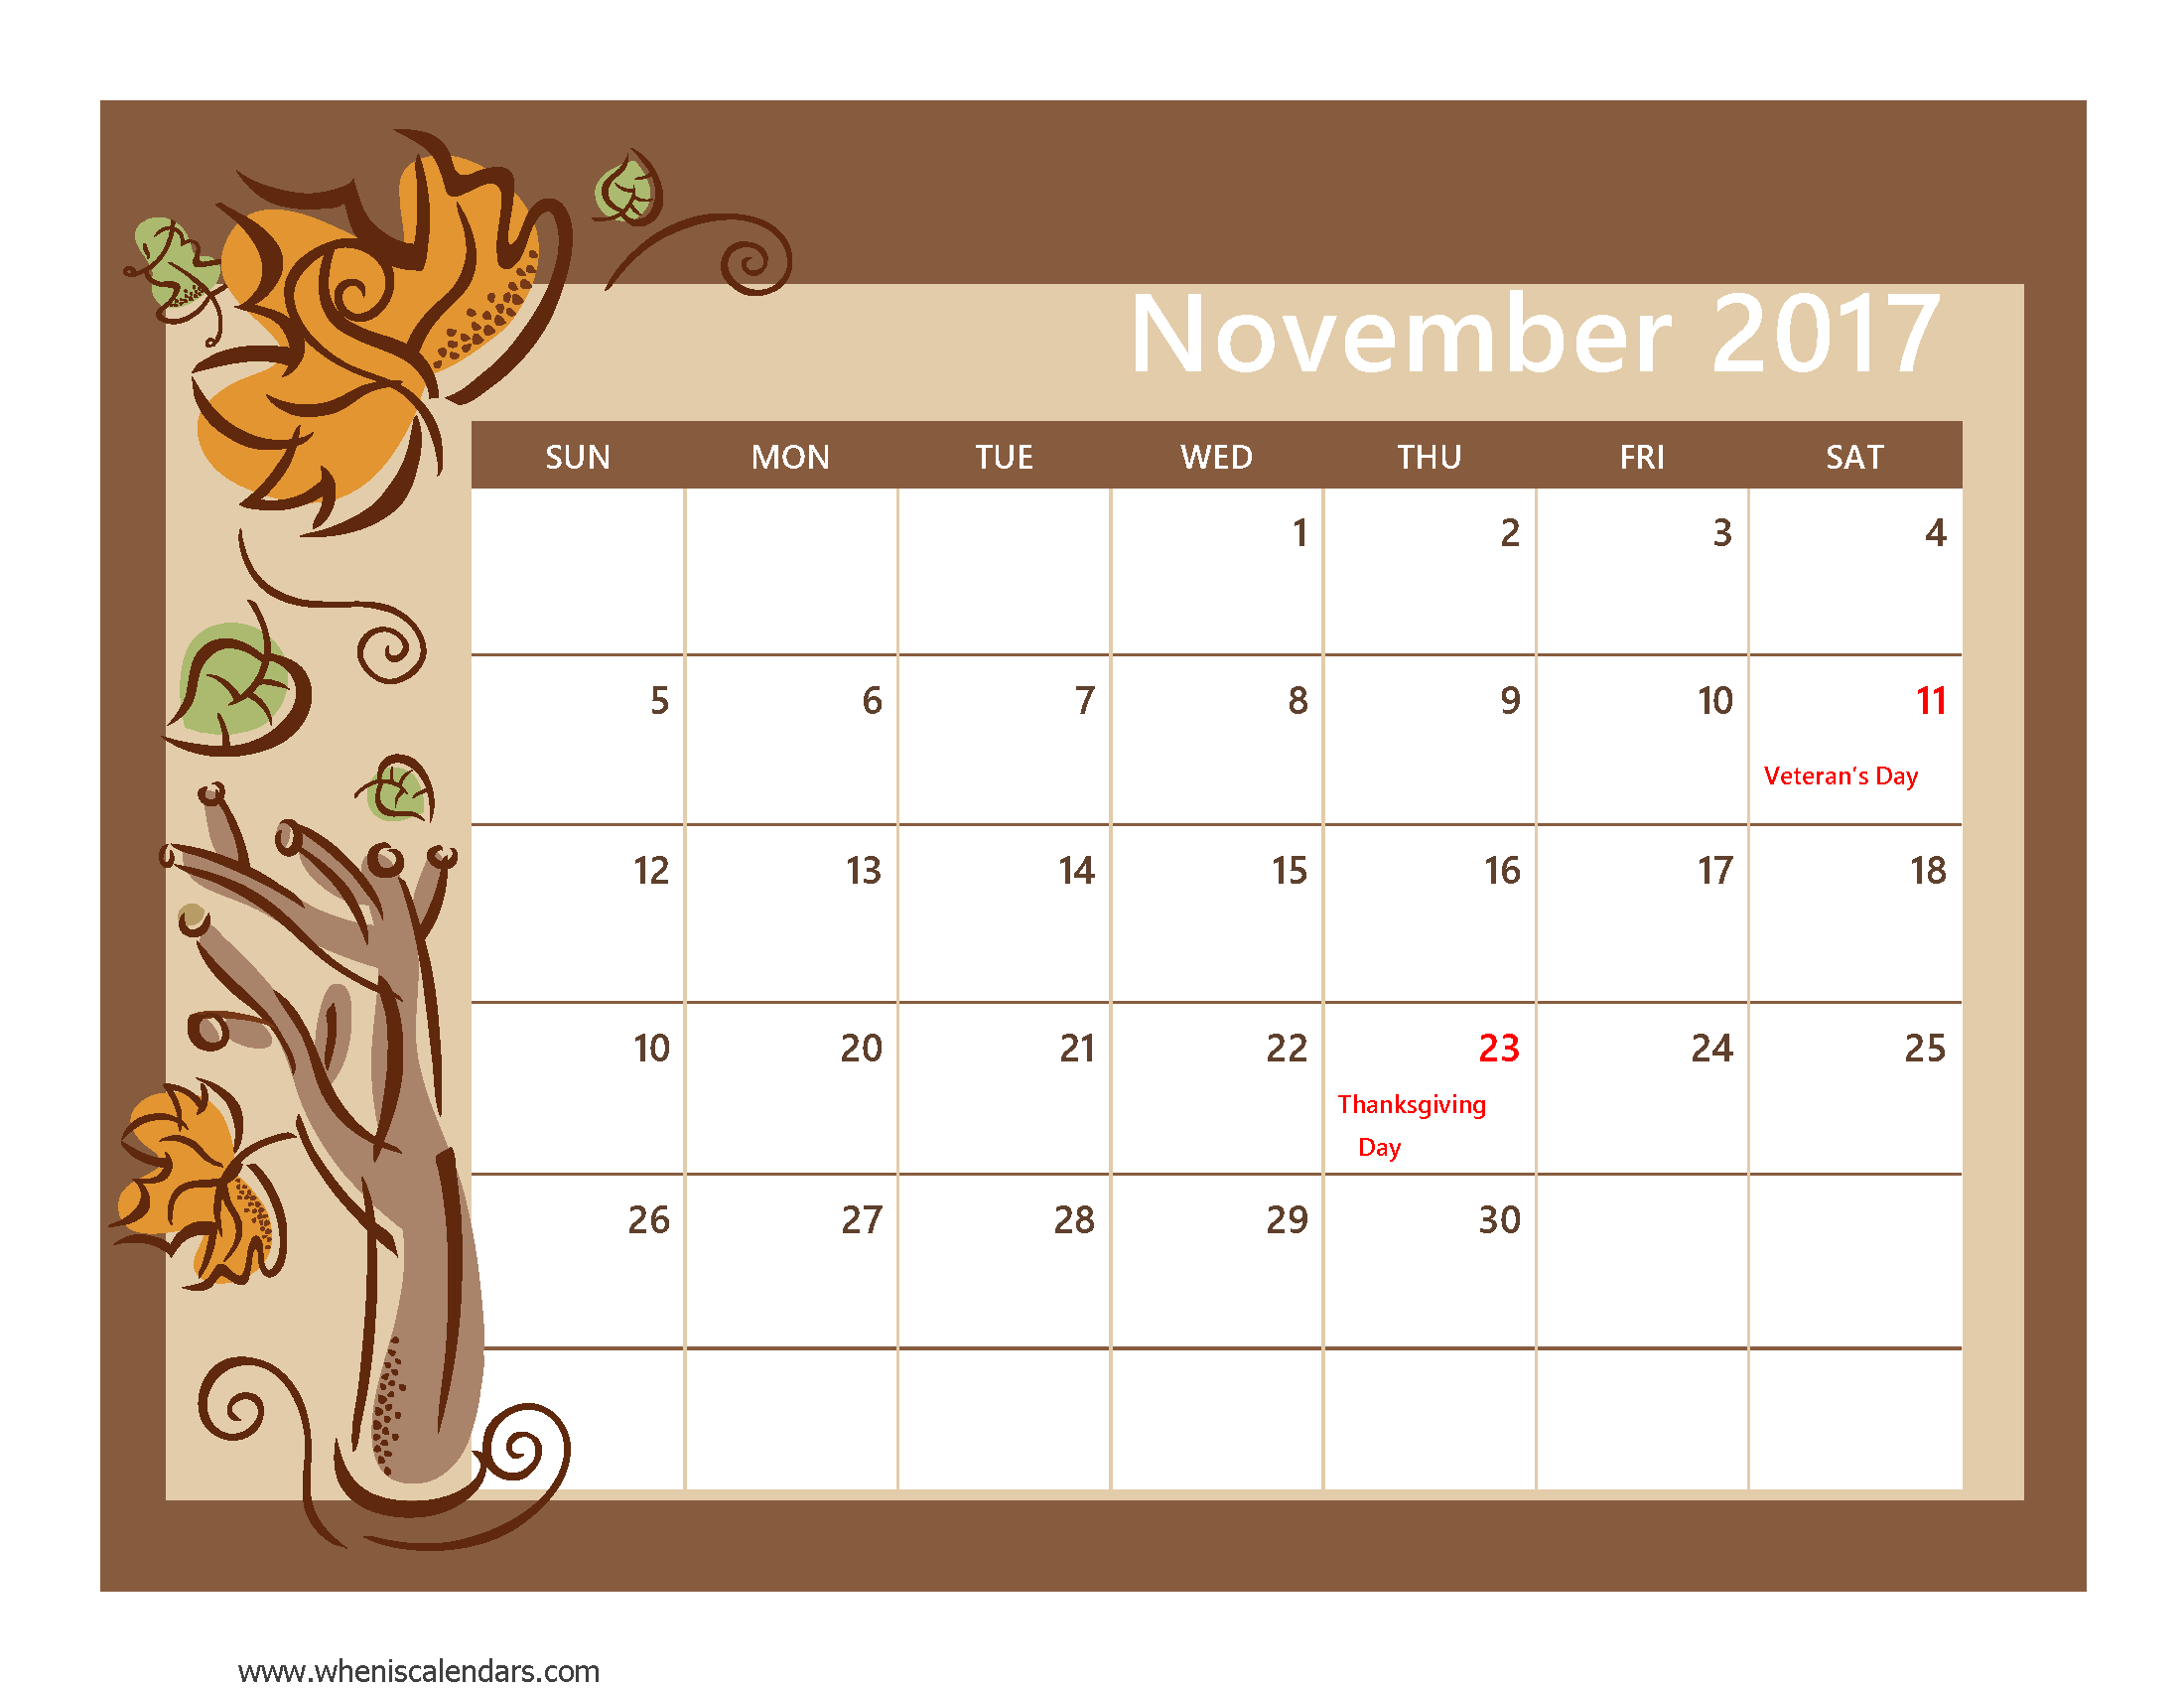 November 2017 Calendar With Holidays | weekly calendar template